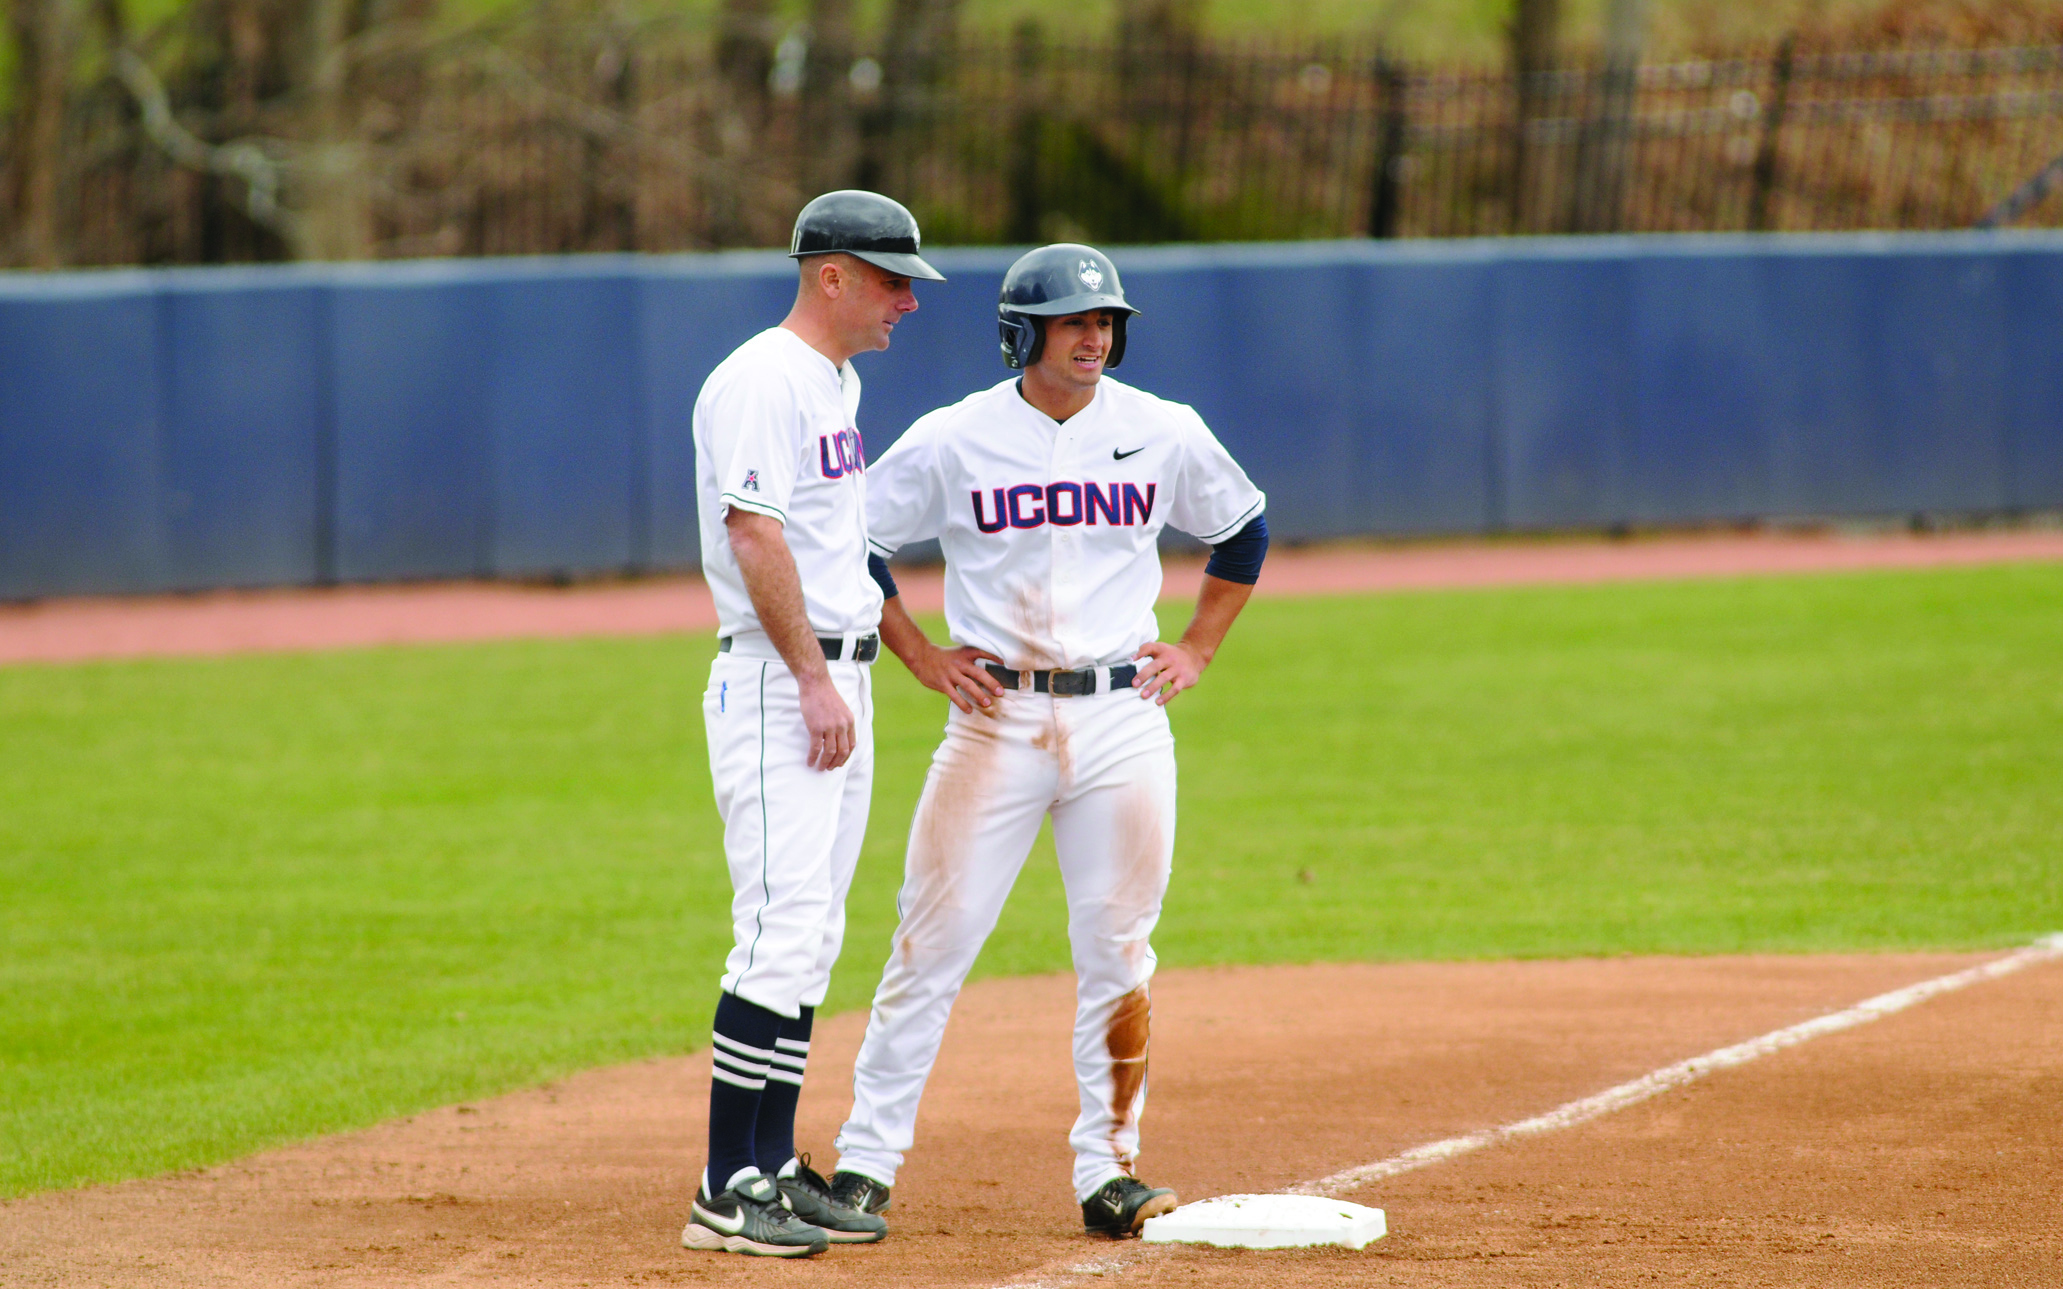 Former UConn infielder Vinny Siena (right) stands with head coach Jim Penders at third base during a game at J.O. Christian Field last spring. Siena was selected in the 14th round of this summer's Major League Baseball draft by the New York Mets. (Brad Watson/The Daily Campus)